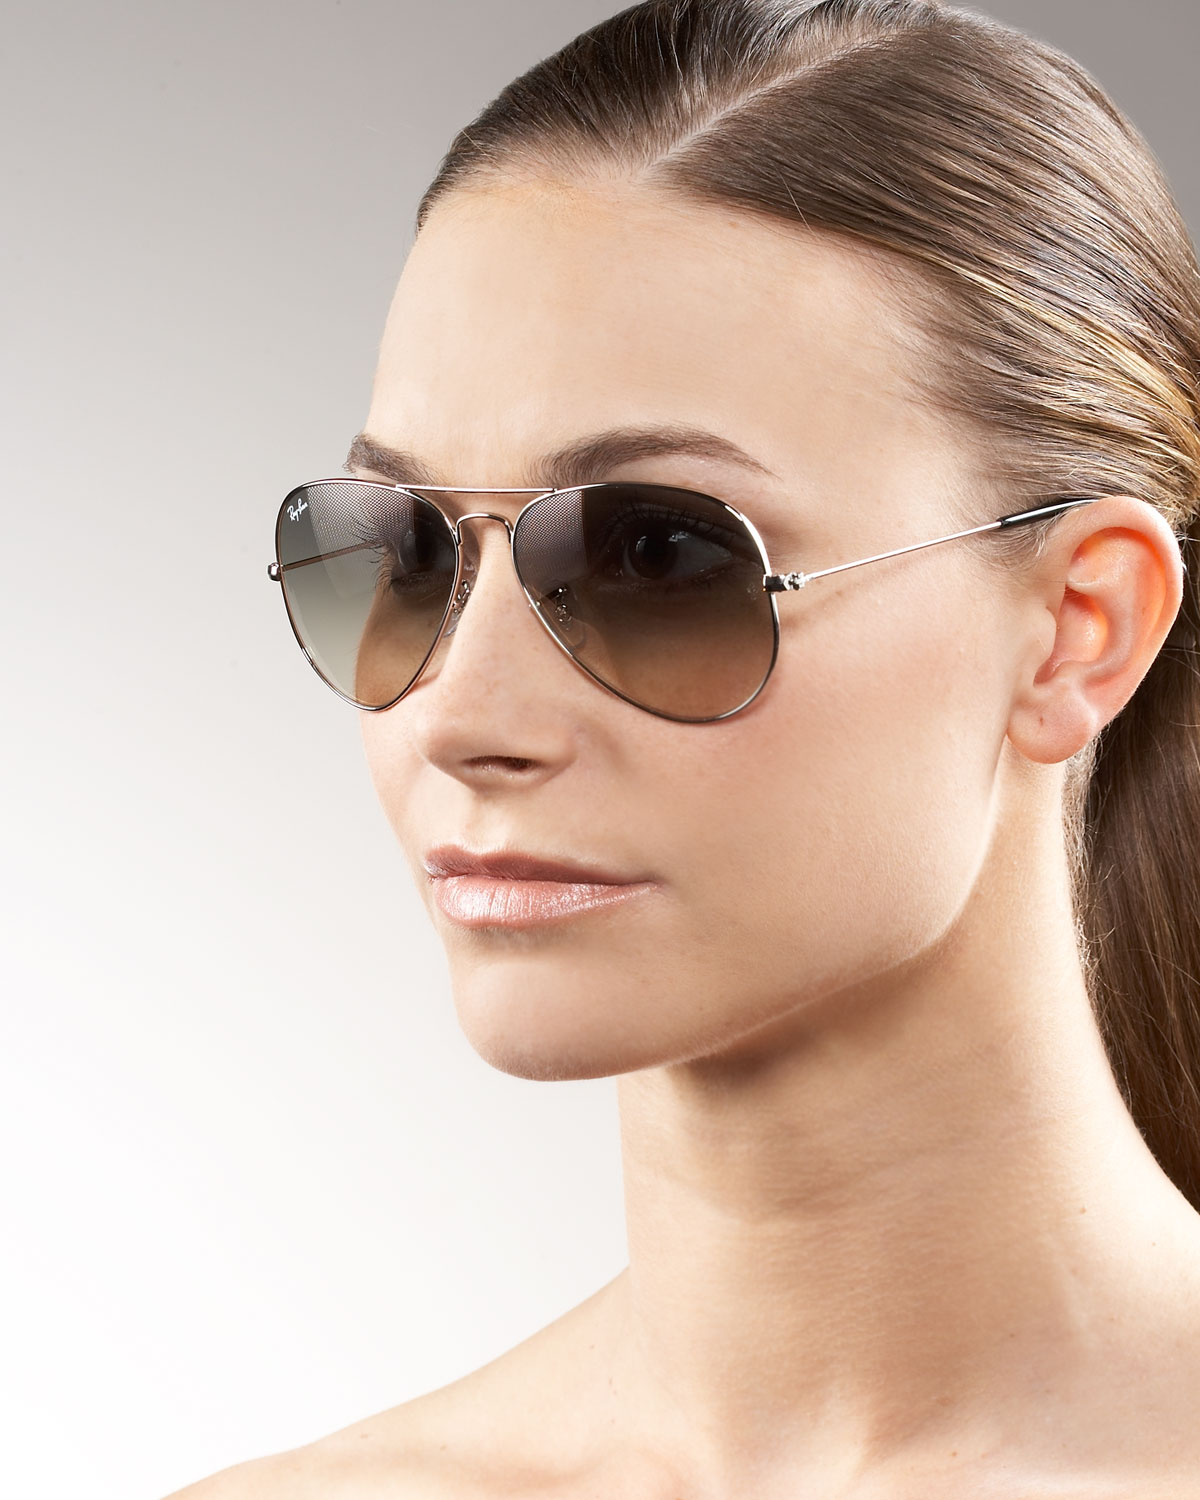 ray ban new classic aviator sunglasses  gallery